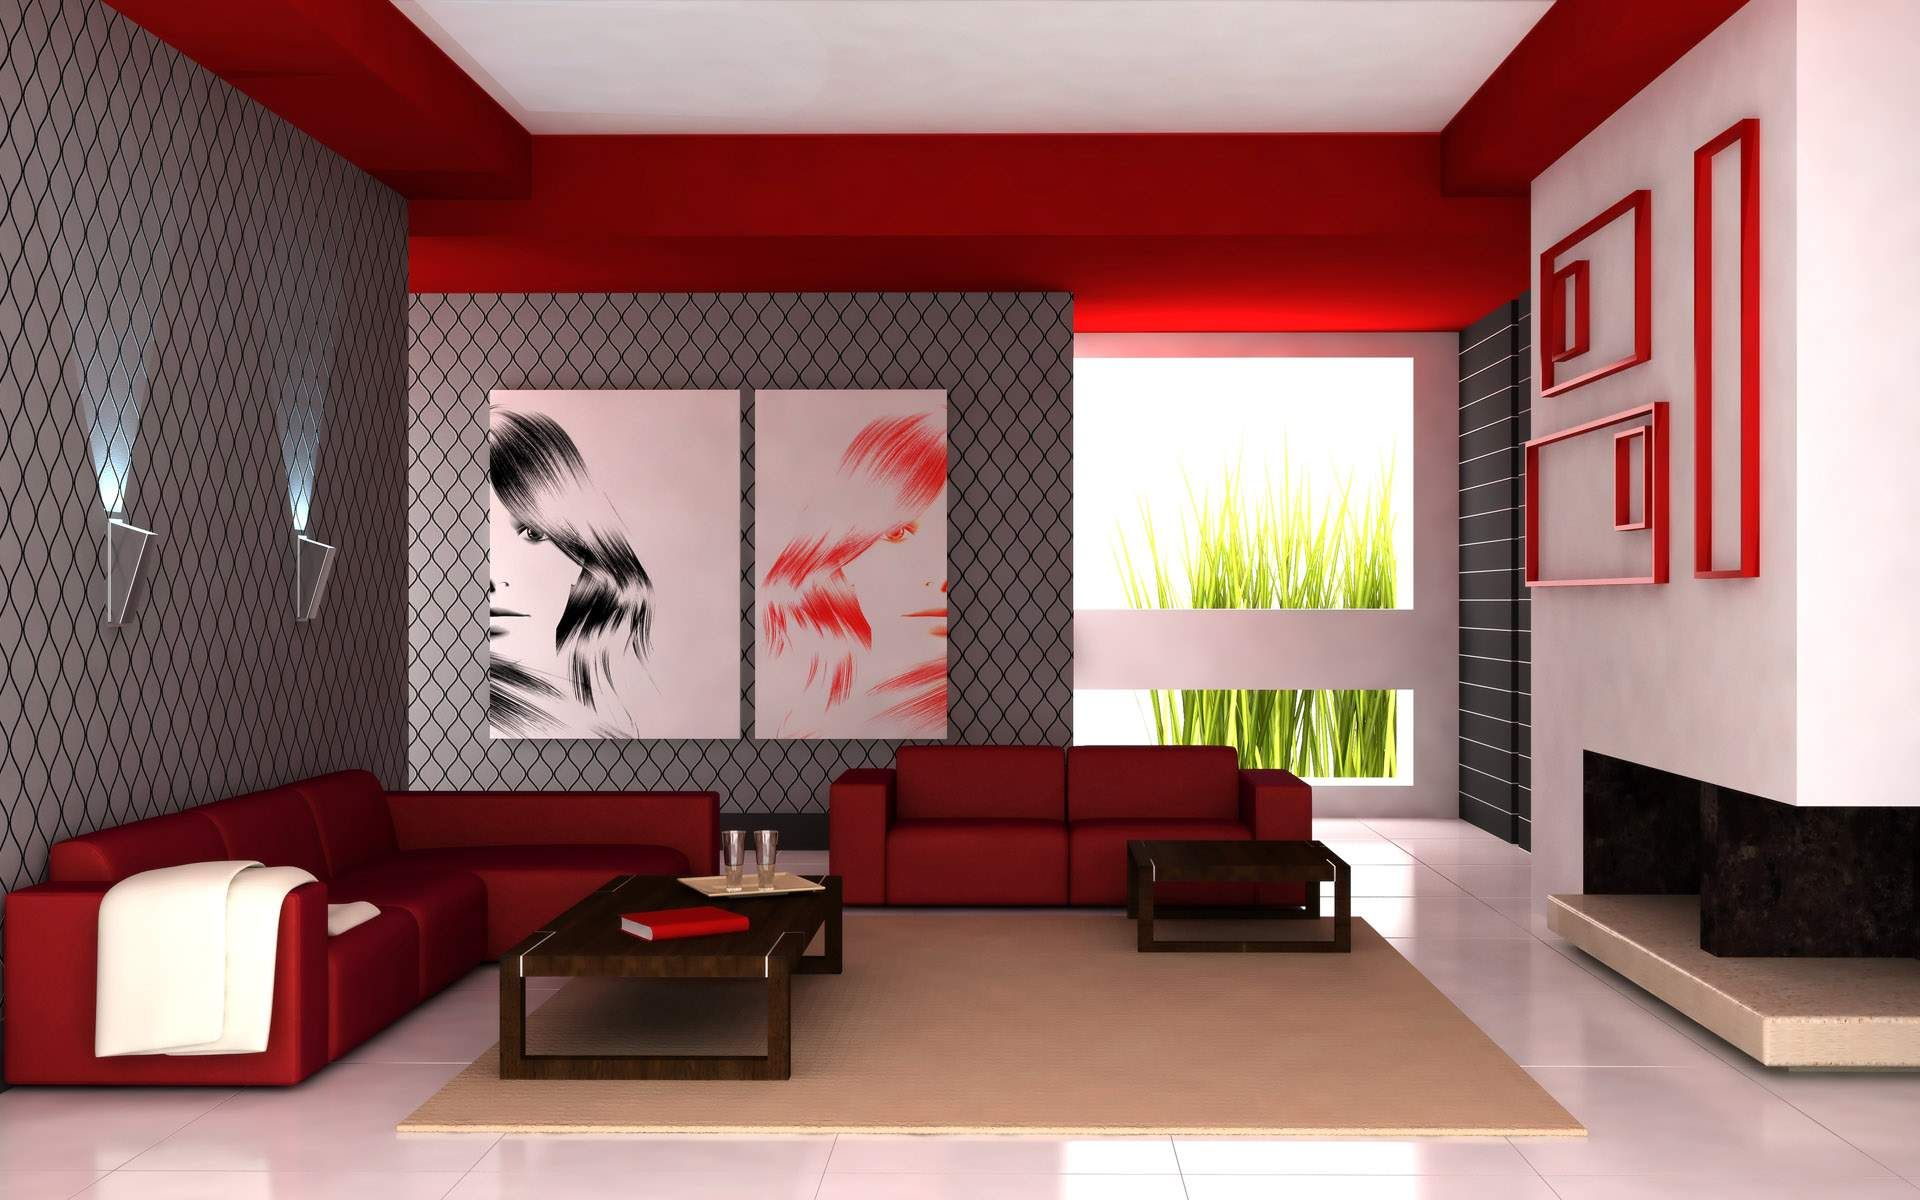 Room Interior Design cool living room interior with flashy red color - stylendesigns